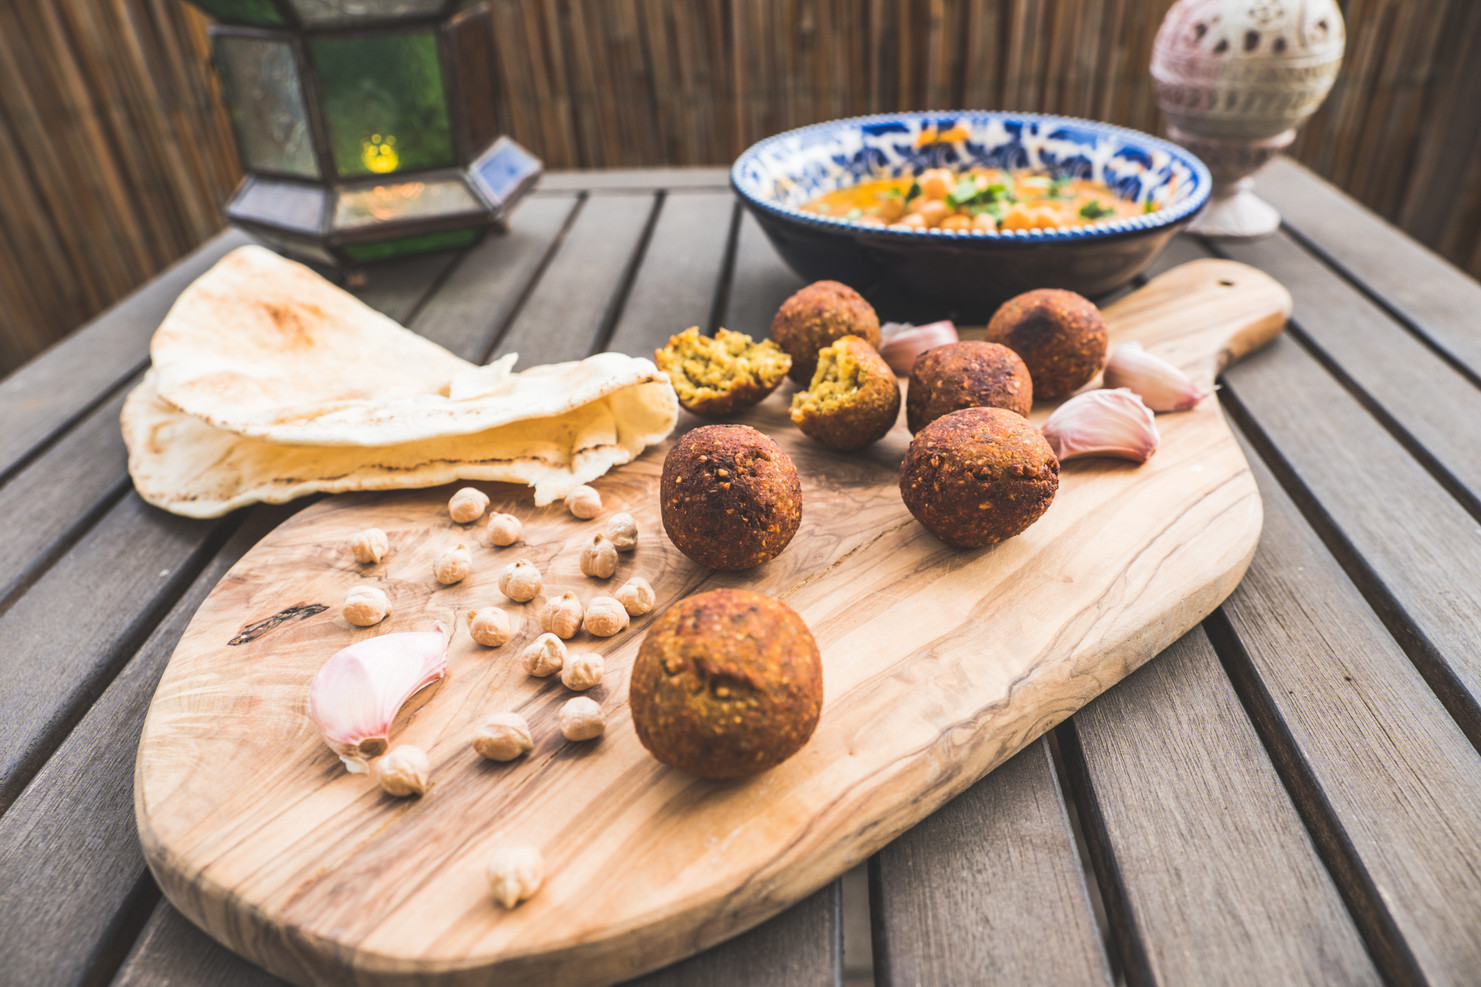 Falafel and hummus with arabian bread